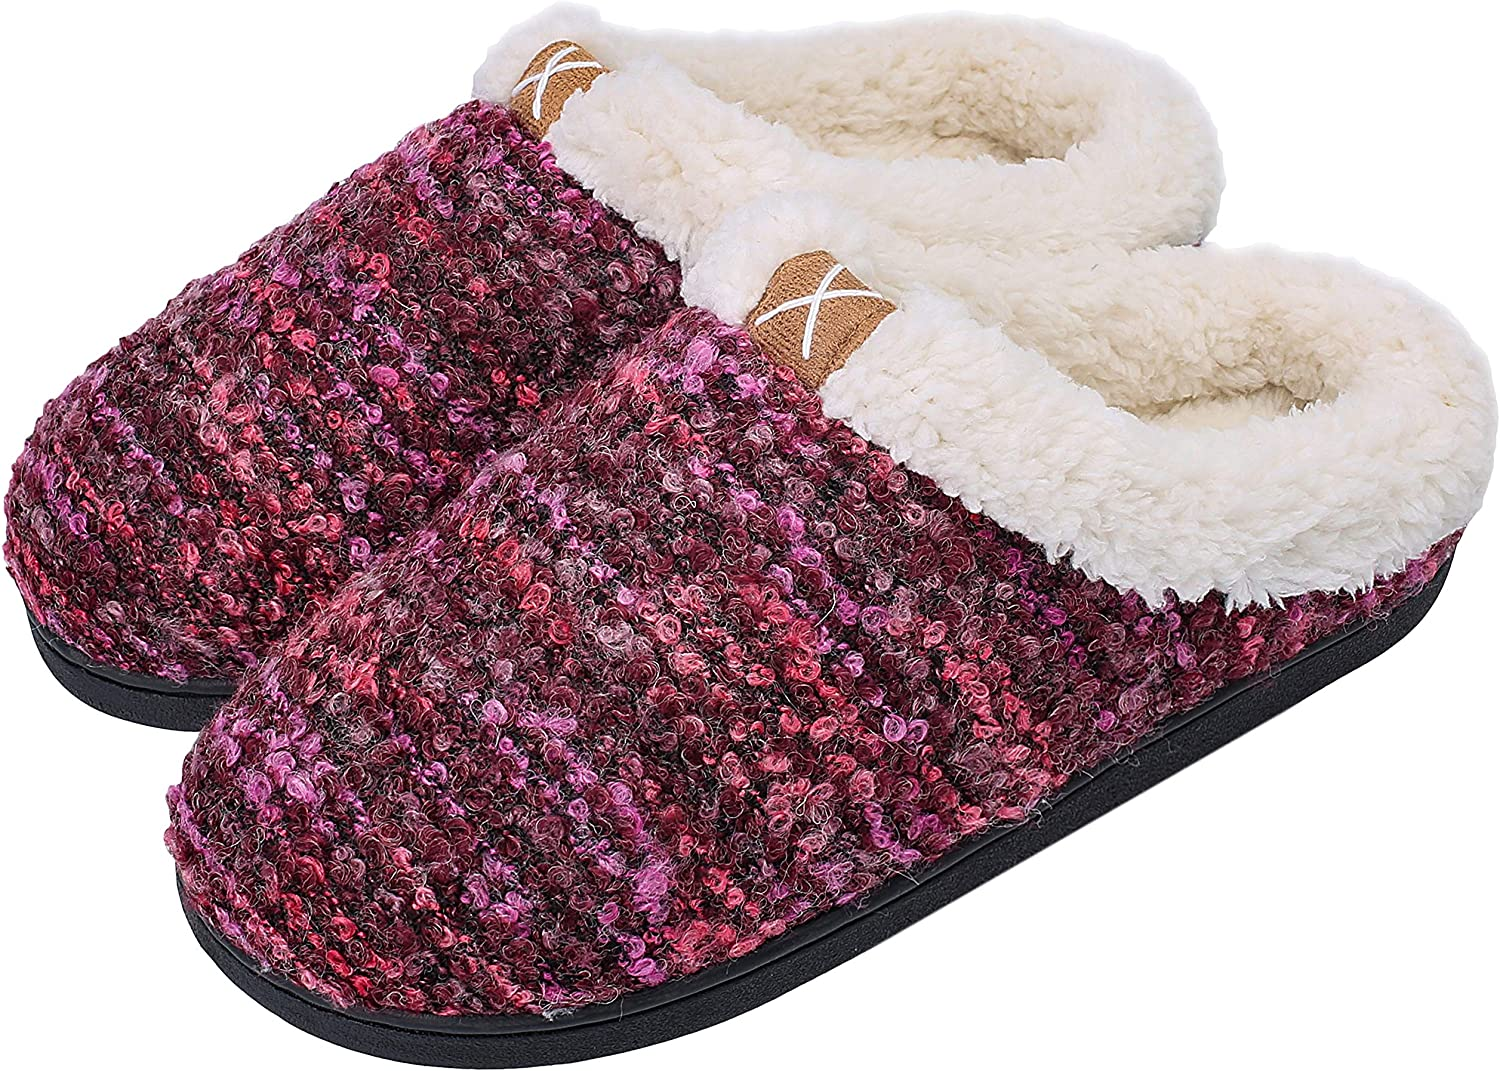 Women's Comfort Memory Foam Slippers Plush Lined House Shoes Indoor, Outdoor Anti-Skid Rubber Sole